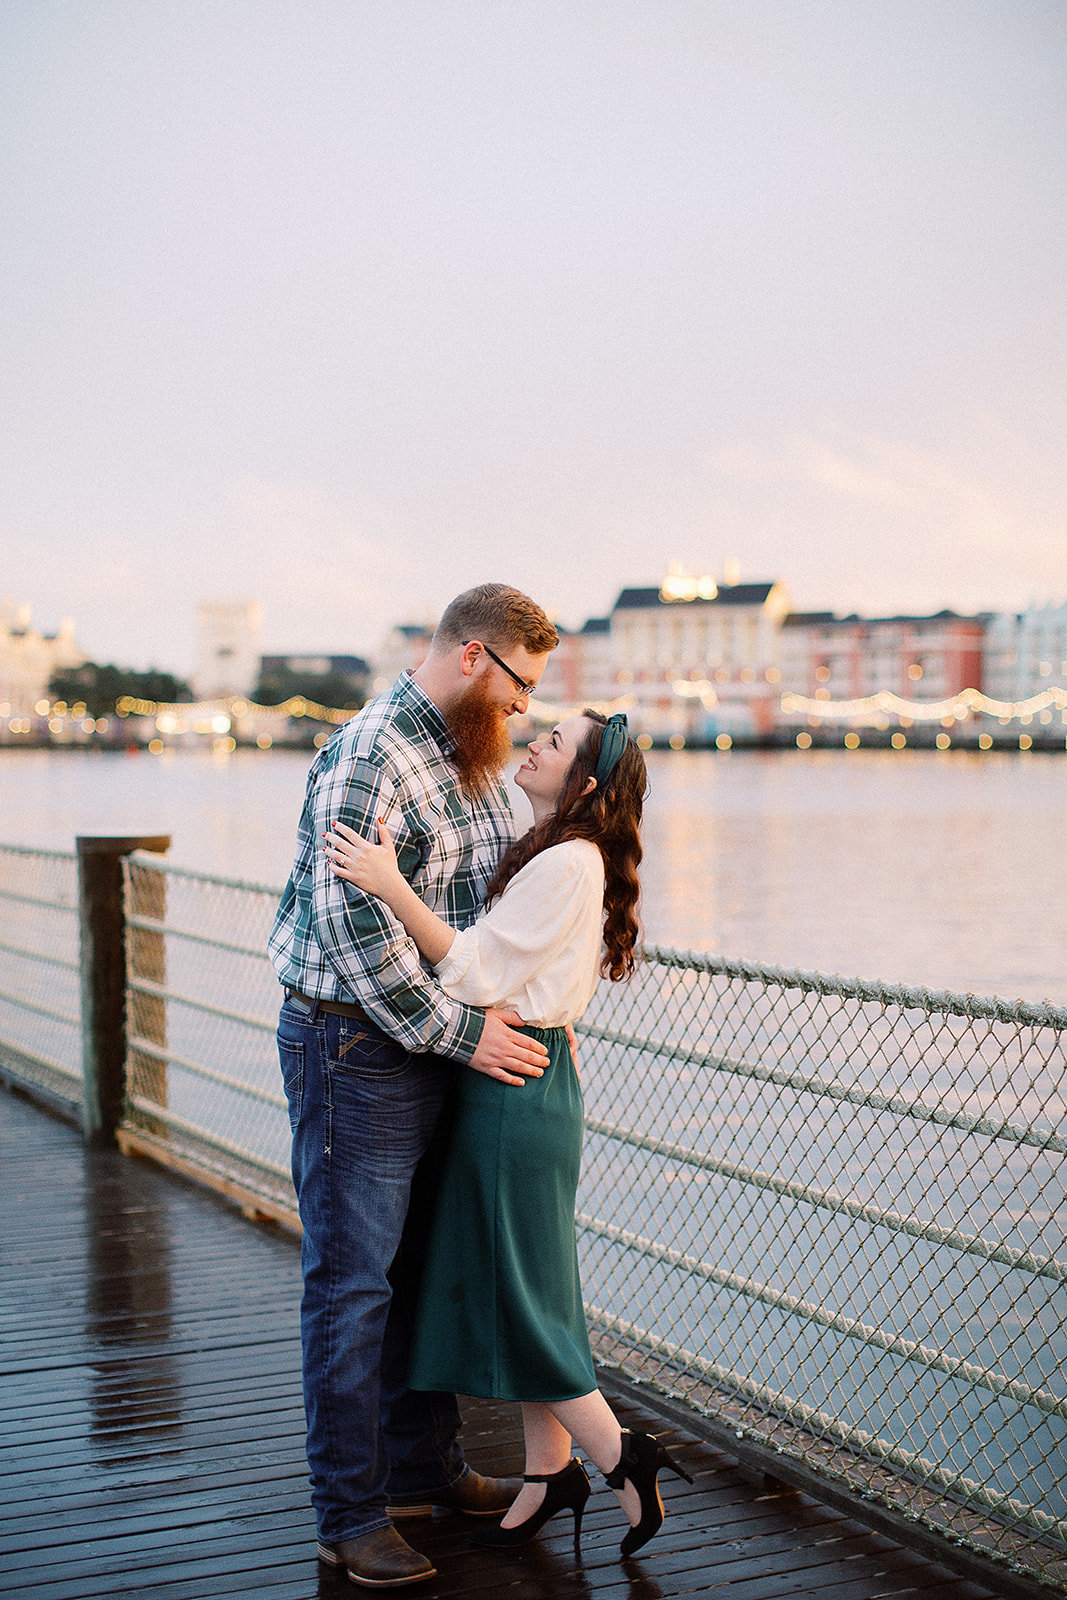 Cassidy_+_Kylor_Proposal_at_Disney_s_Beach_Club_Resort_Photographer_Casie_Marie_Photography-128